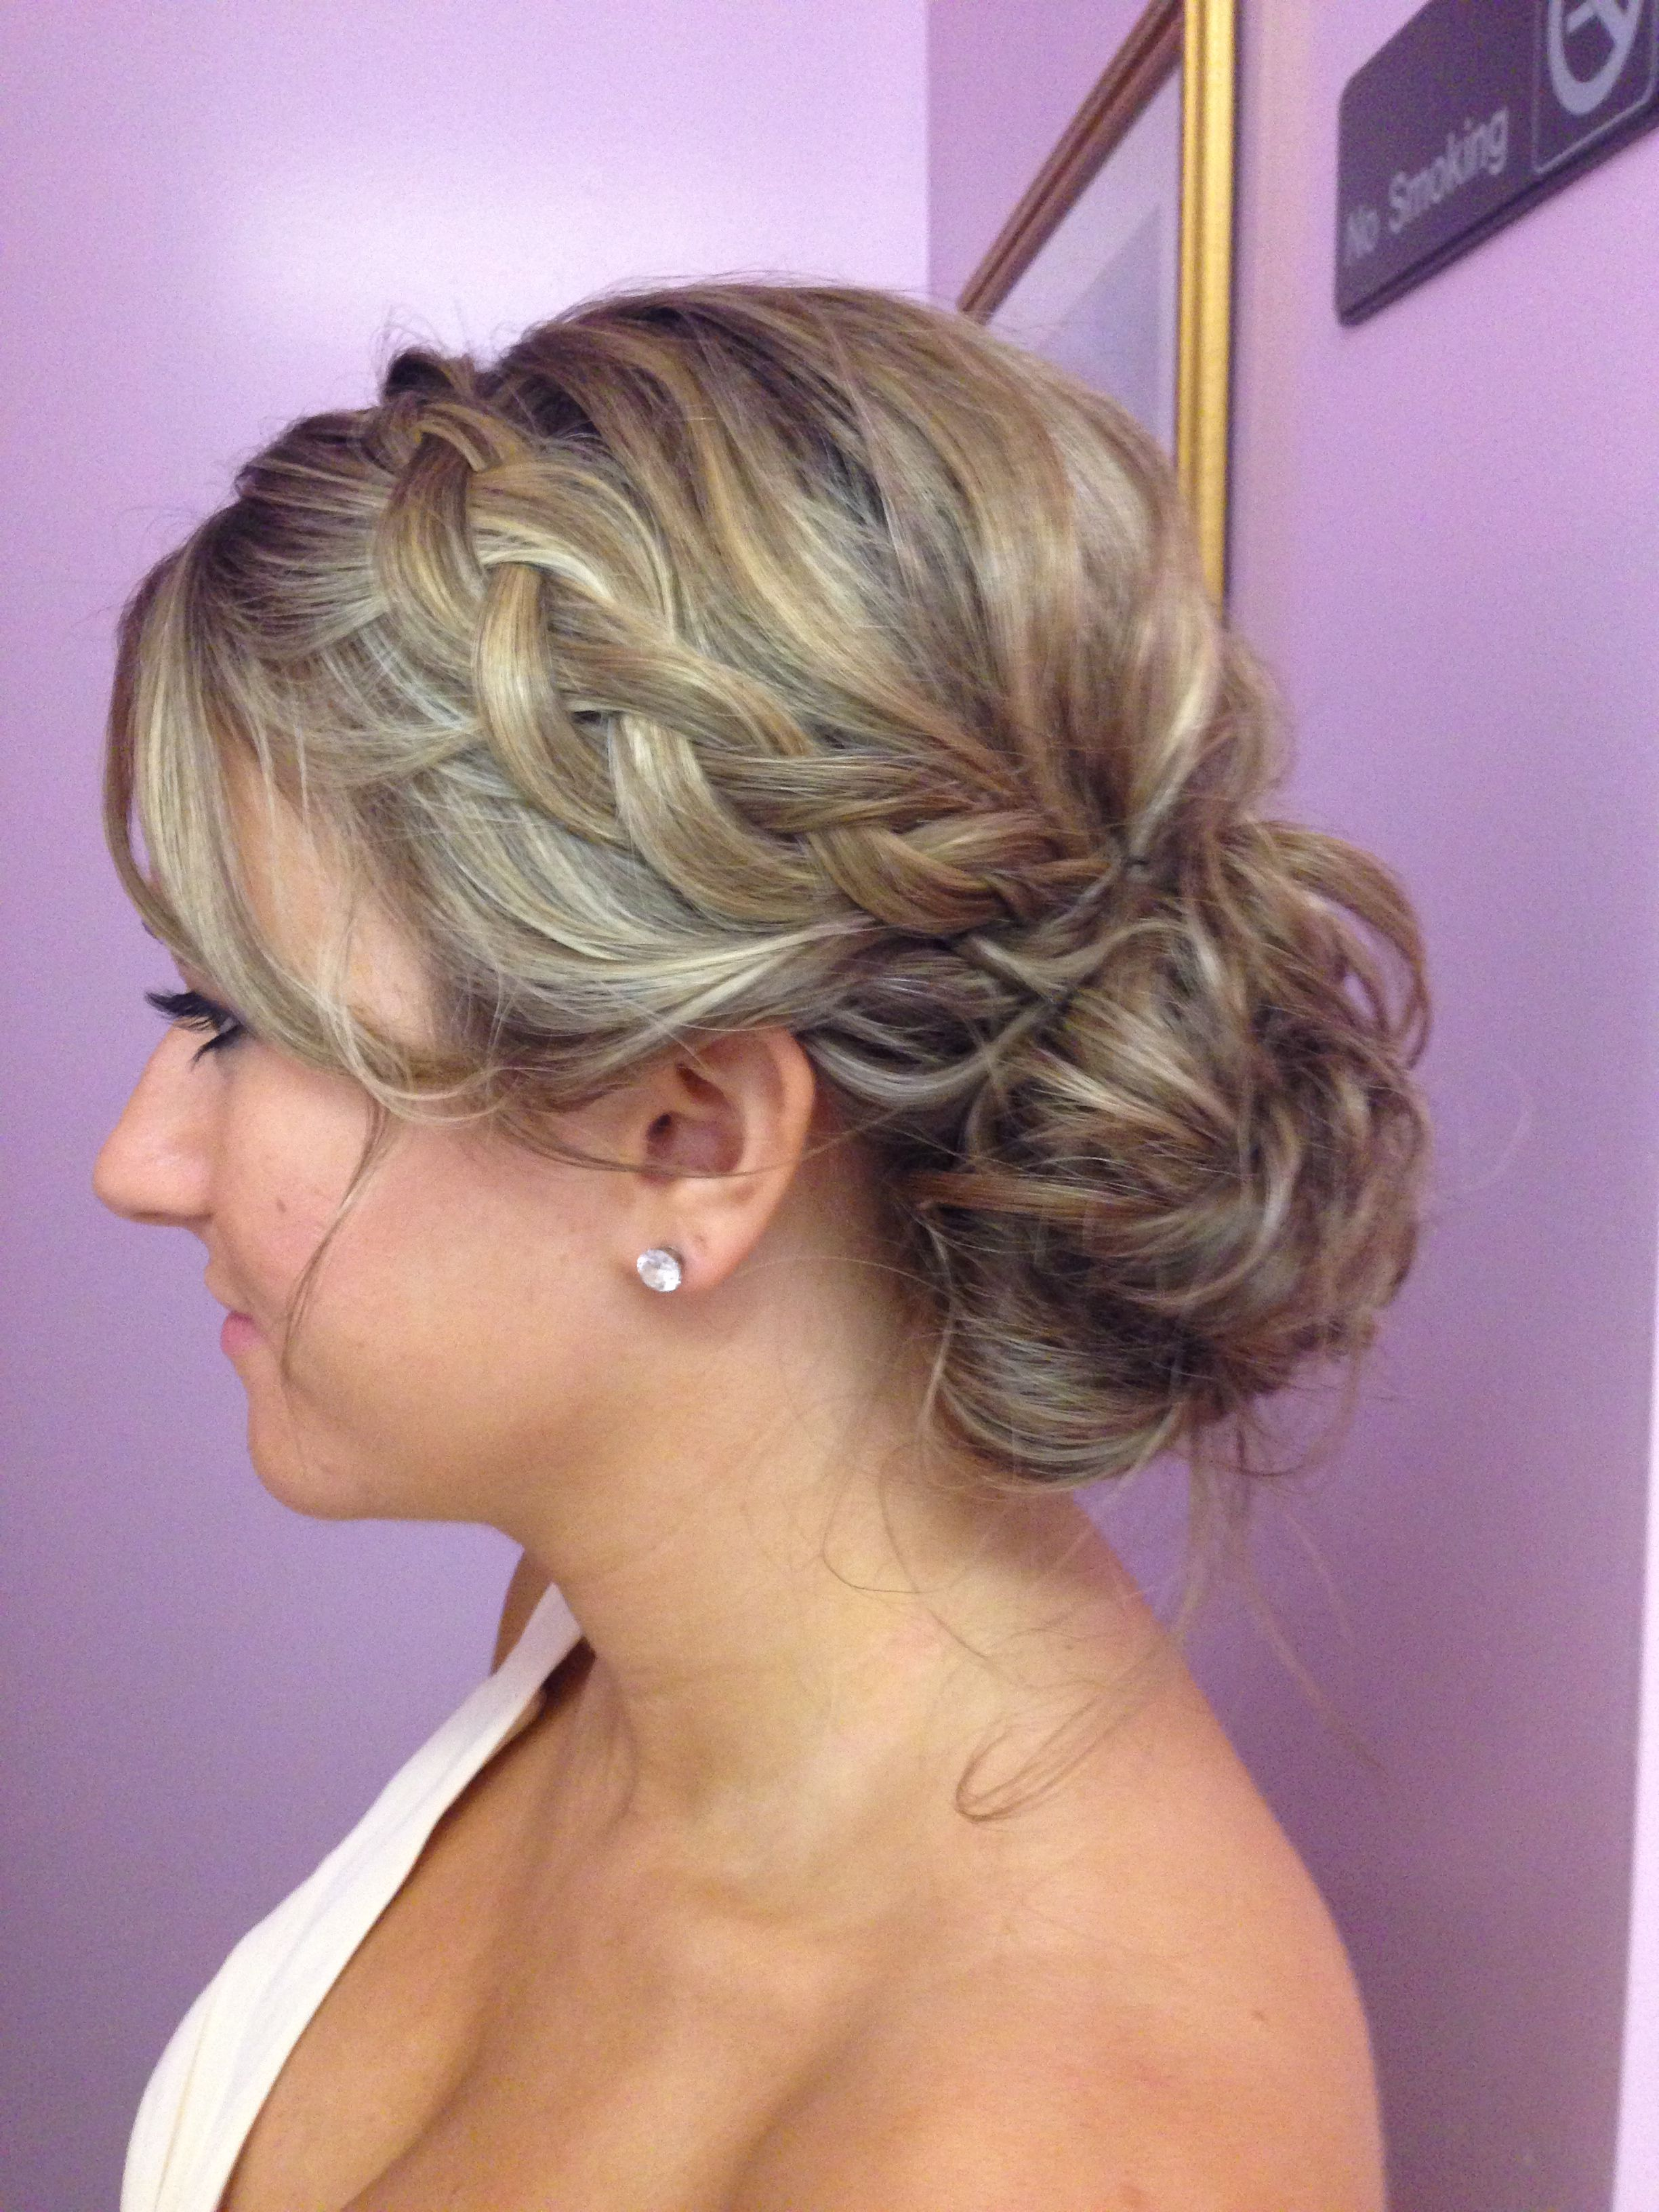 Bridesmaid hair bridesmaids can do whatever they would like as long